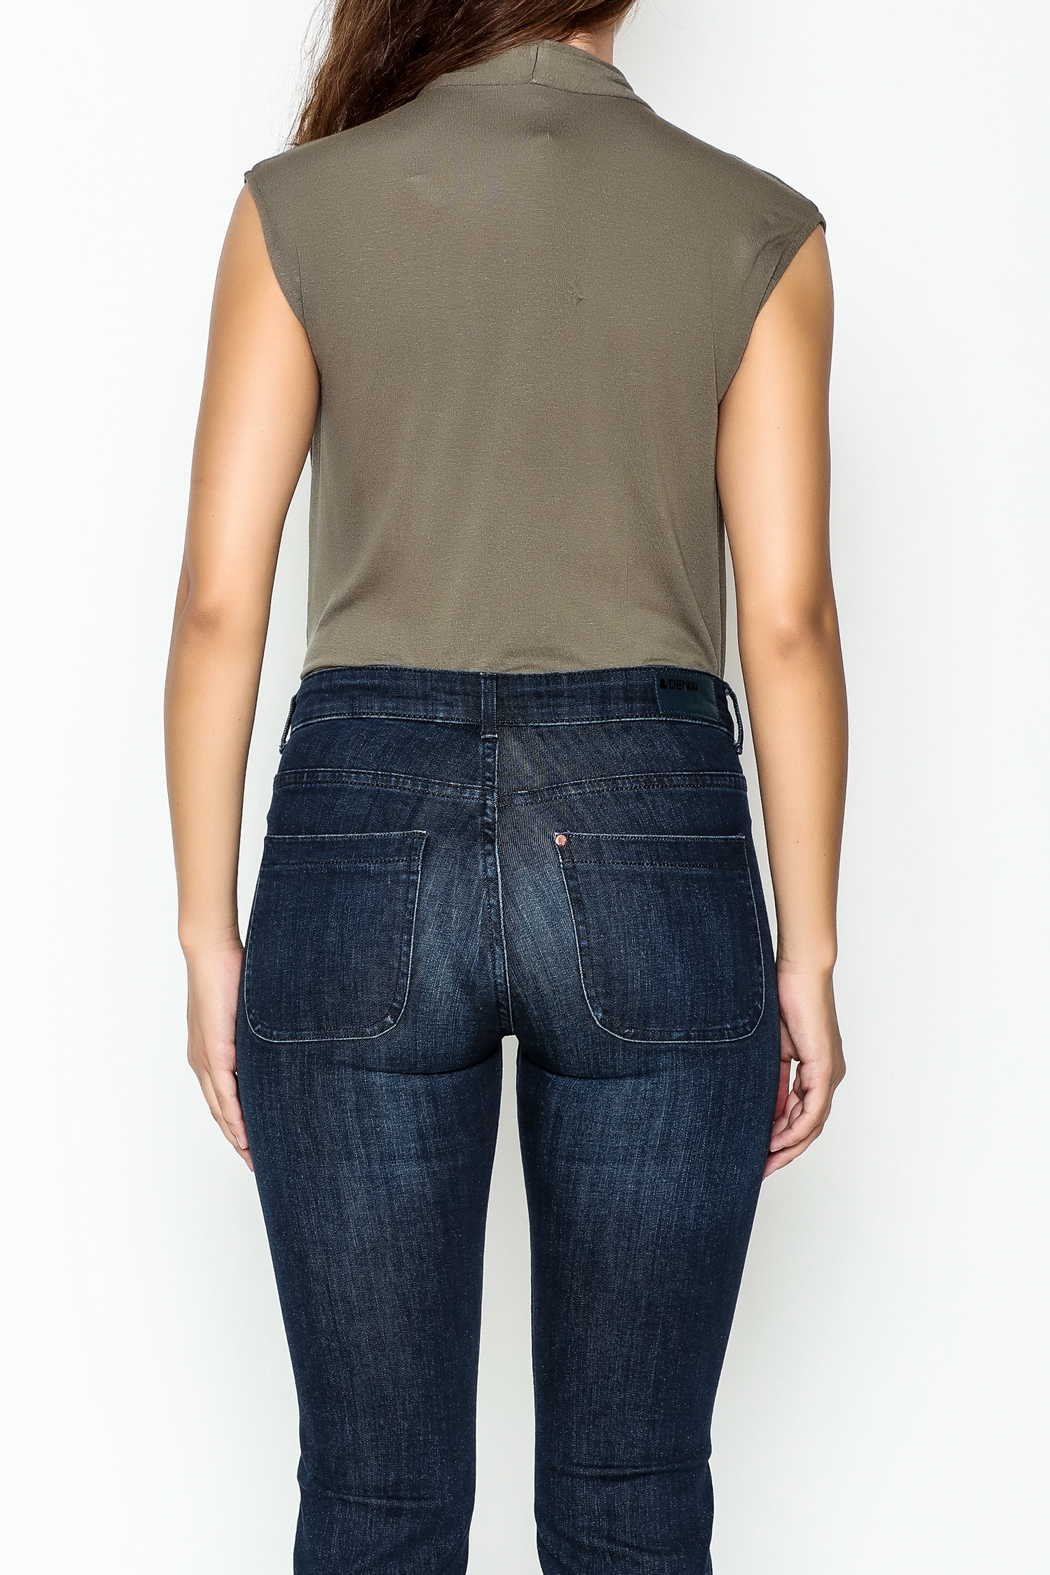 Mustard Seed Date Night Bodysuit - Back Cropped Image